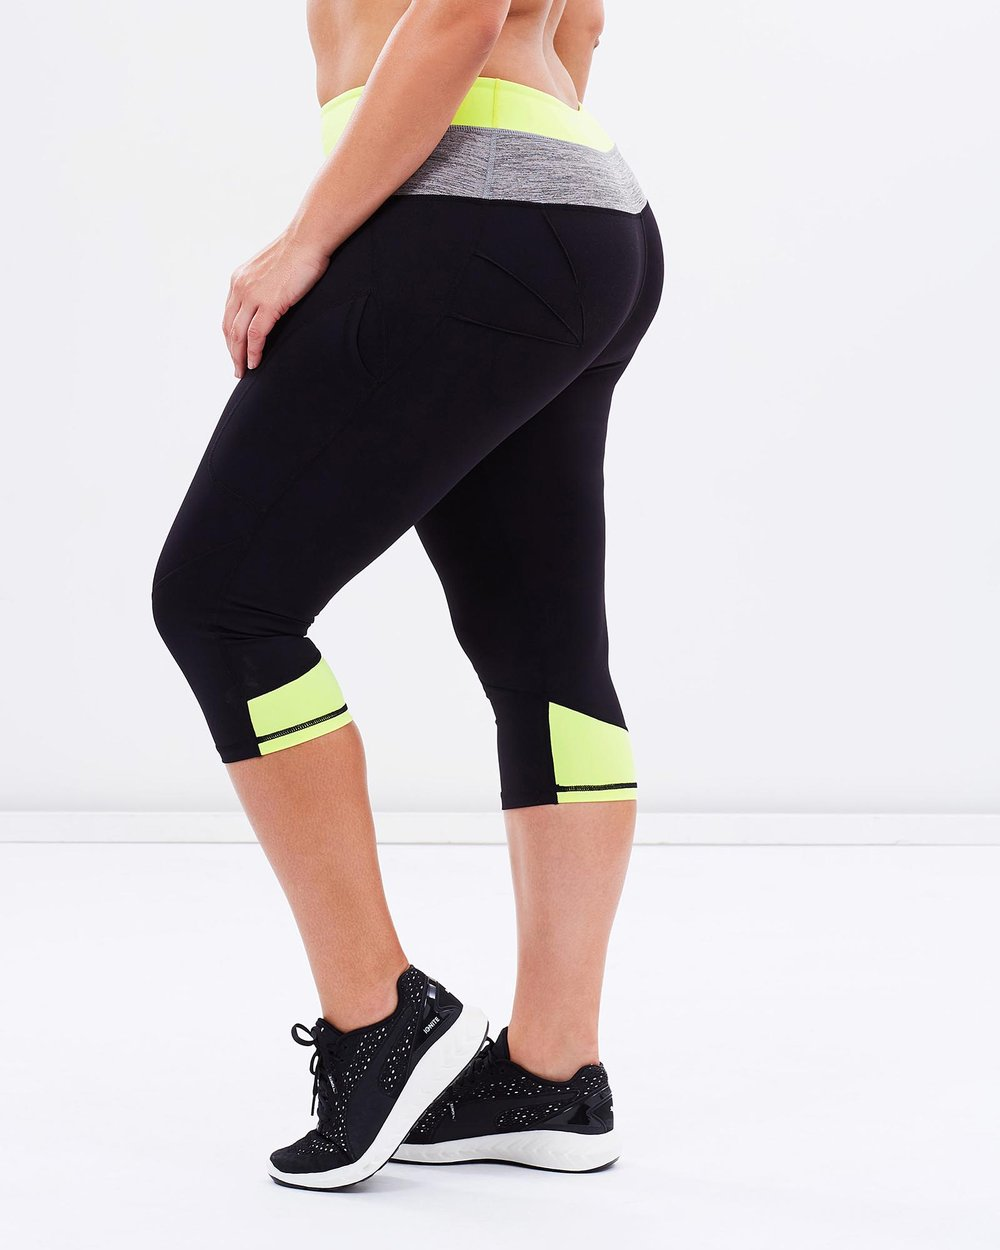 240038d074013 Two Tone Body Sculpt Tights by Curvy Chic Sports Online | THE ICONIC |  Australia